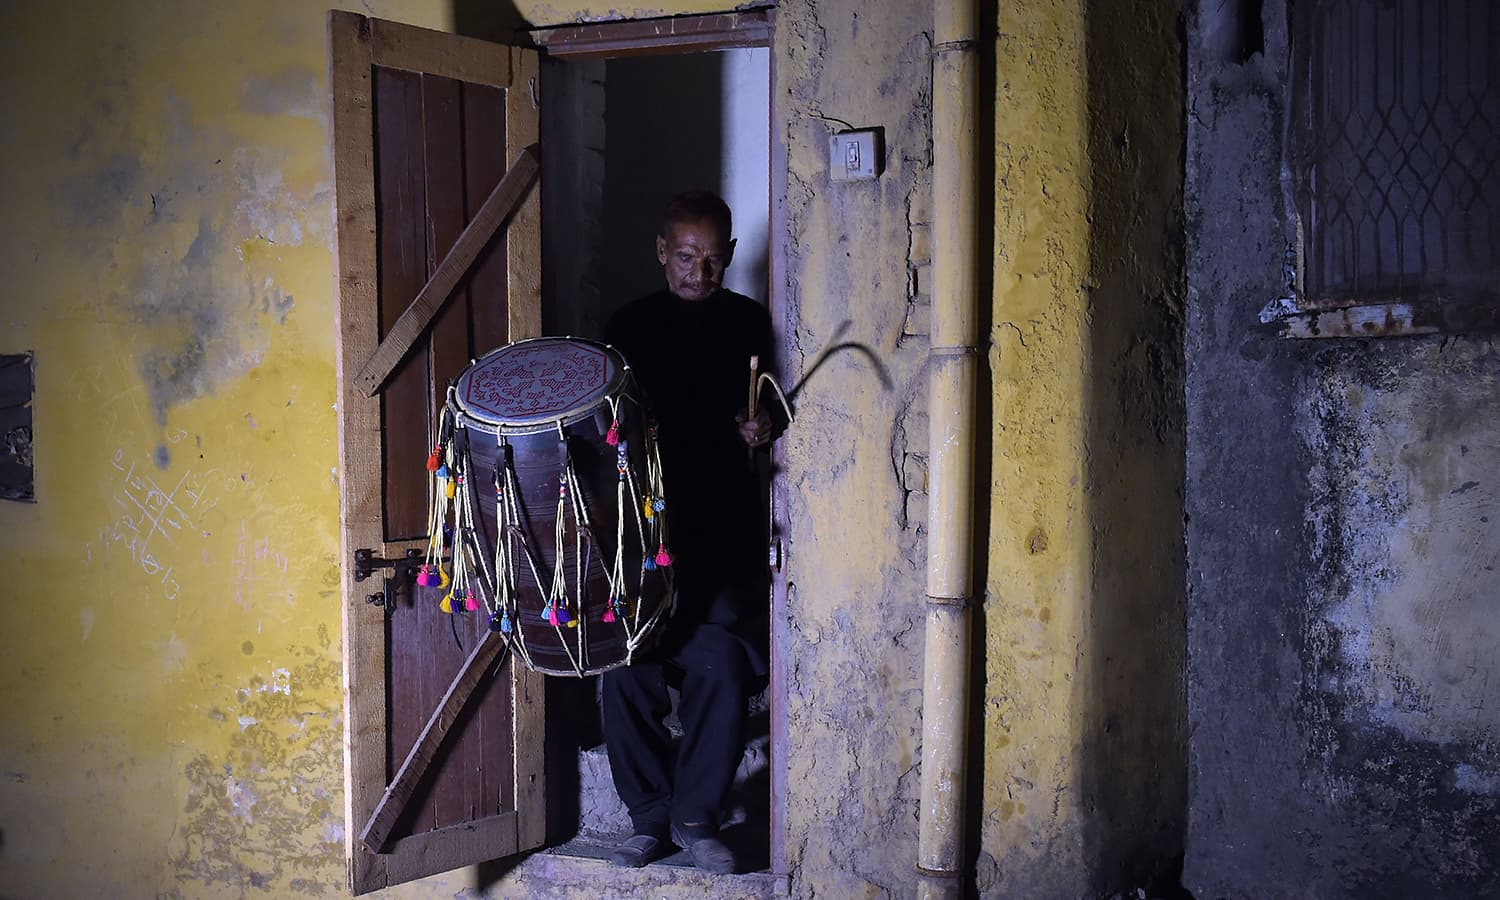 Lal Hussain, 66, 'Ramazan drummer' holds his drum as he leaves his house to makes calls at doors. — AFP